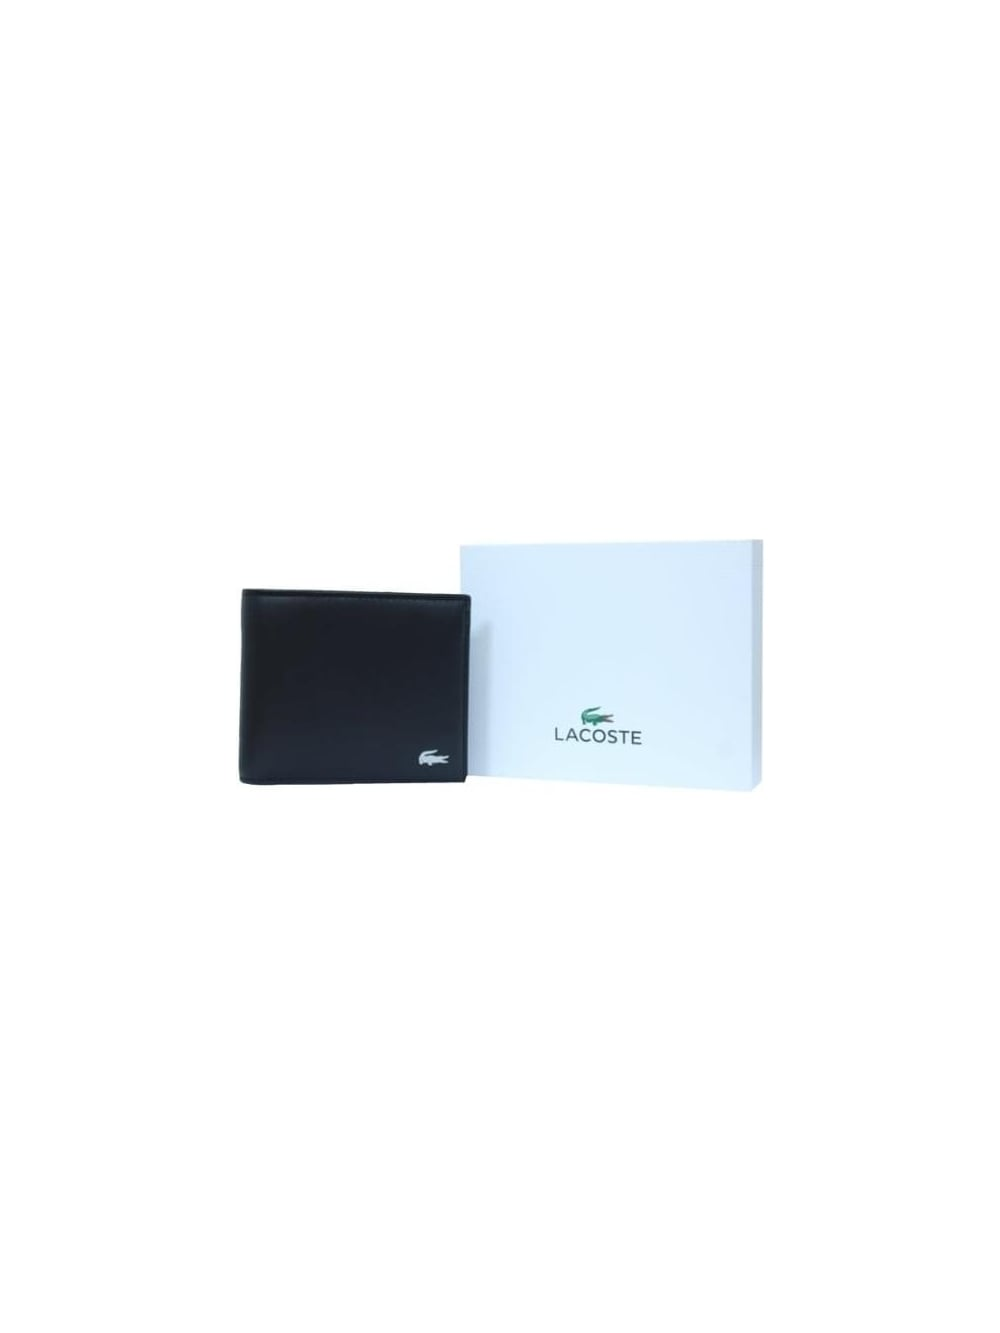 26c0f37d9f44 Lacoste Billfold   Coin Leather Wallet in Black - Northern Threads